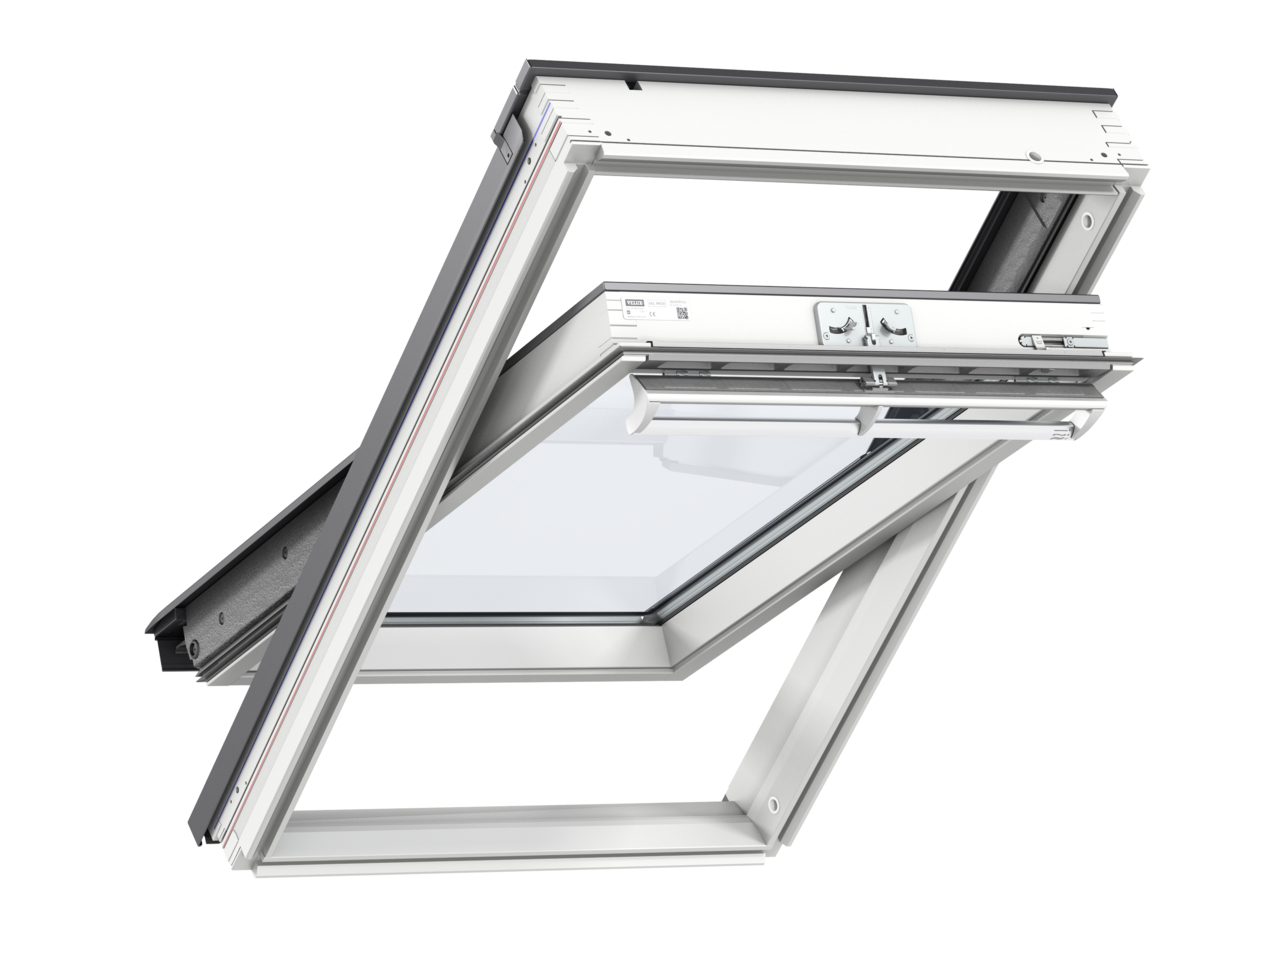 Velux GGL CK04 550 x 980mm Centre Pivot 62Pane Roof Window - White Painted